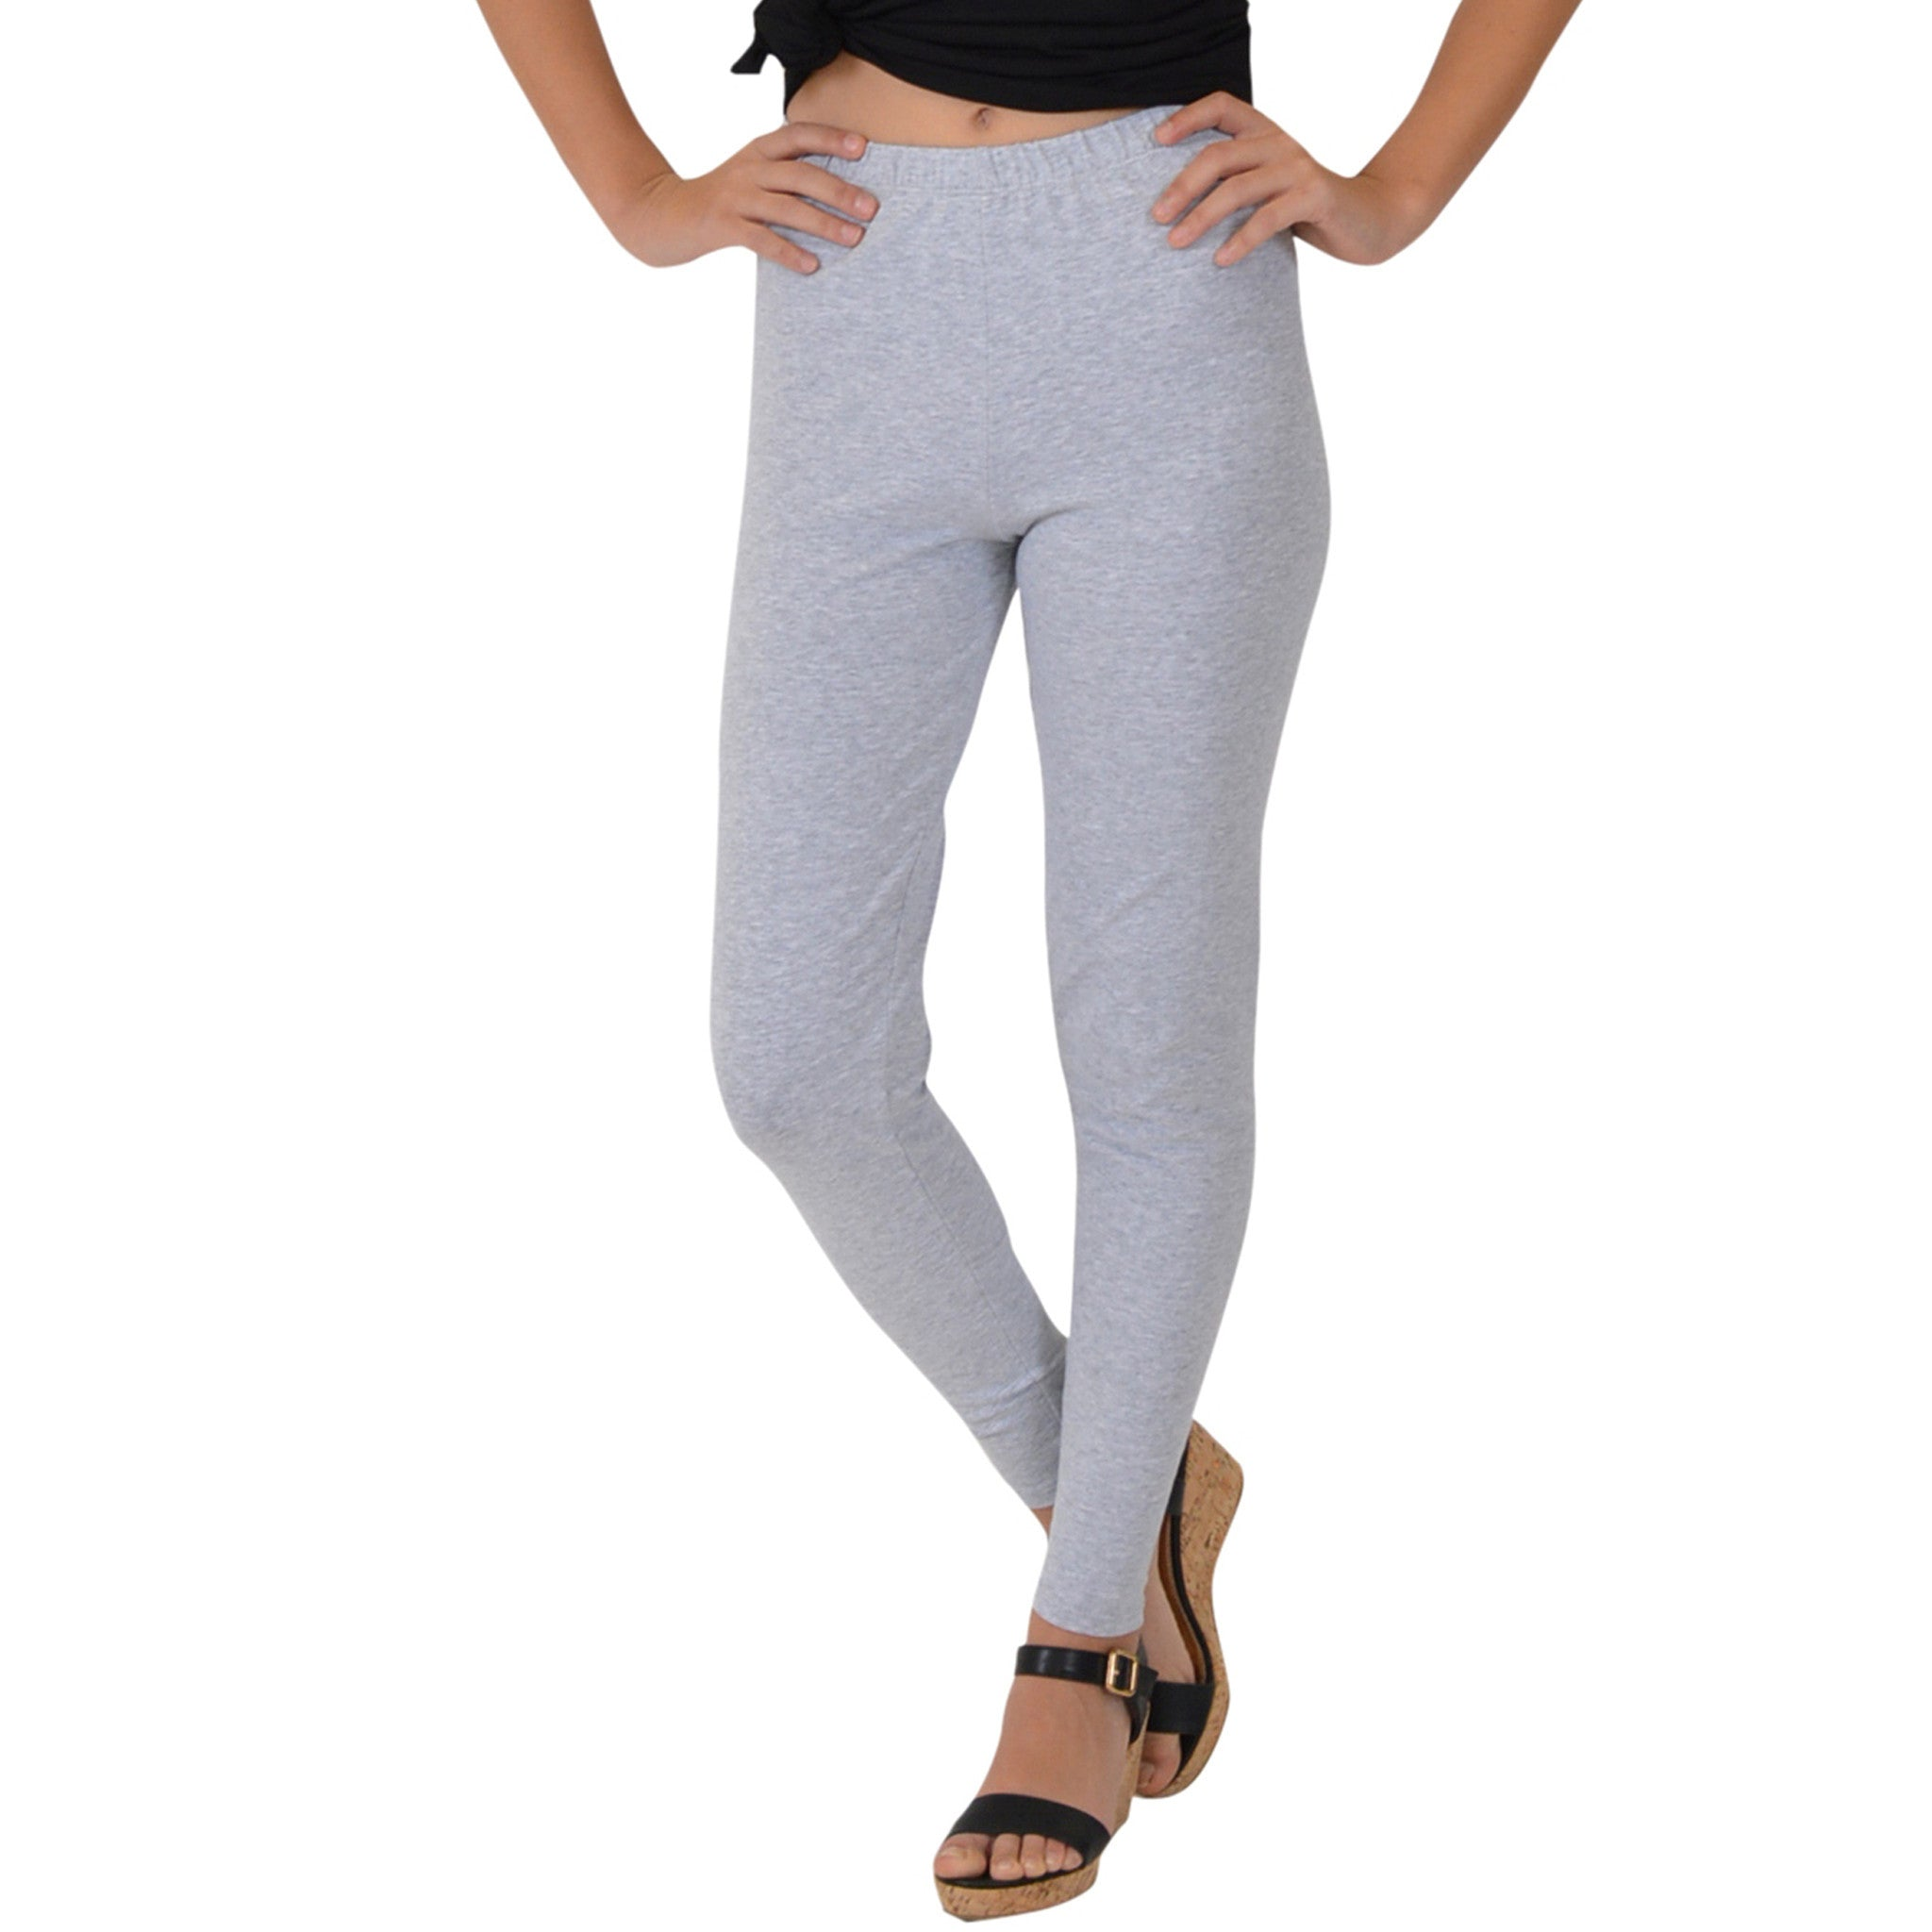 Teamwear Cotton Leggings 1